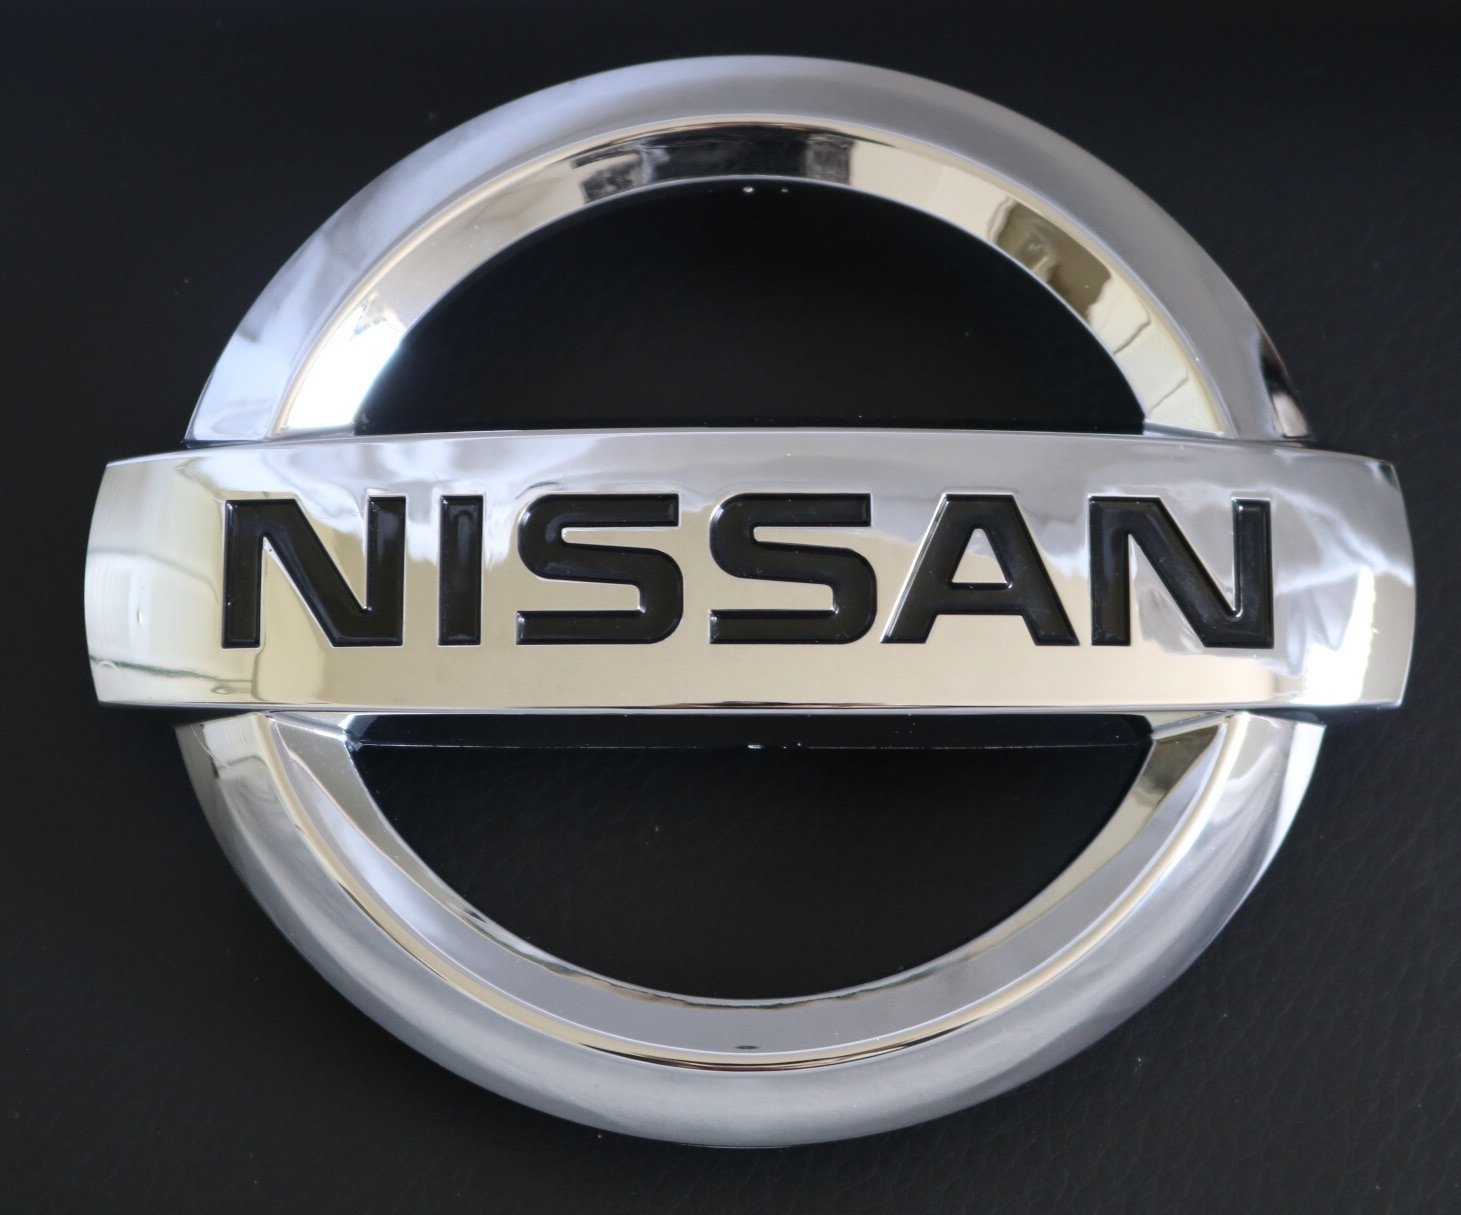 NEW 3D Special Chrome Finished Nissan Nismo Front Grill Metal Badge Logo Emblem Auto Shop